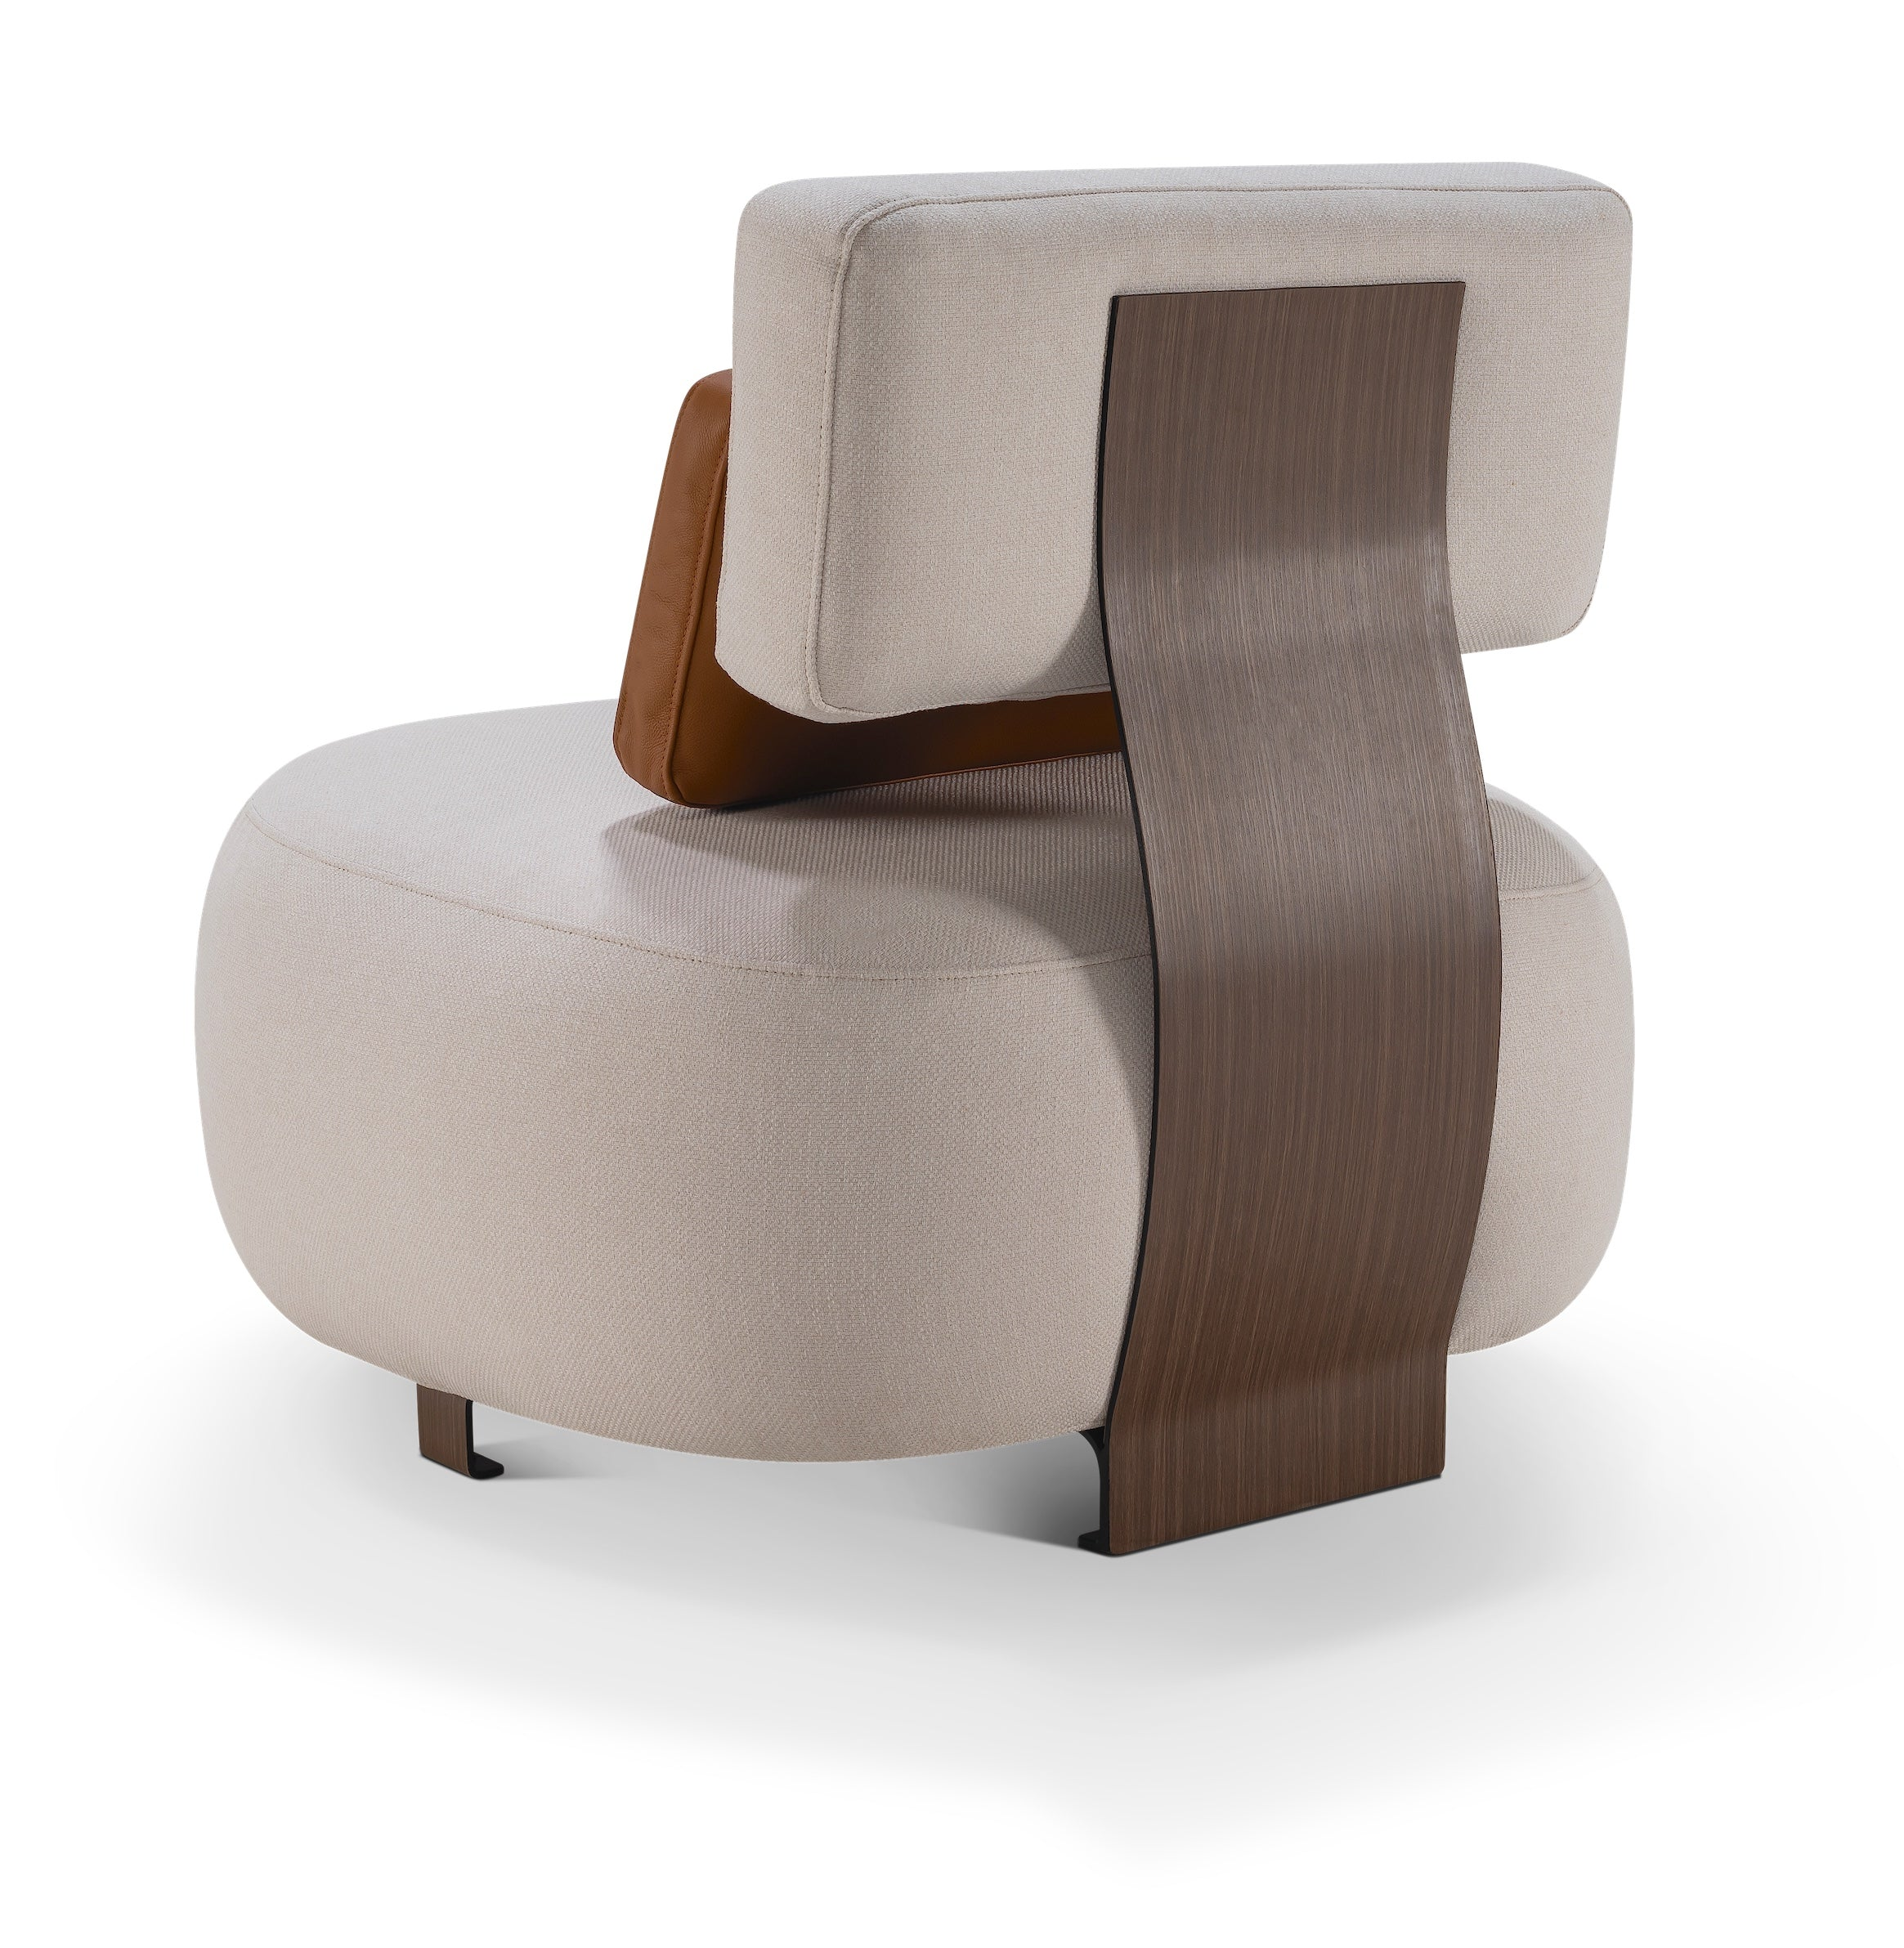 Winding lounge chair by Mauricio Bomfim - Kelly Christian Designs